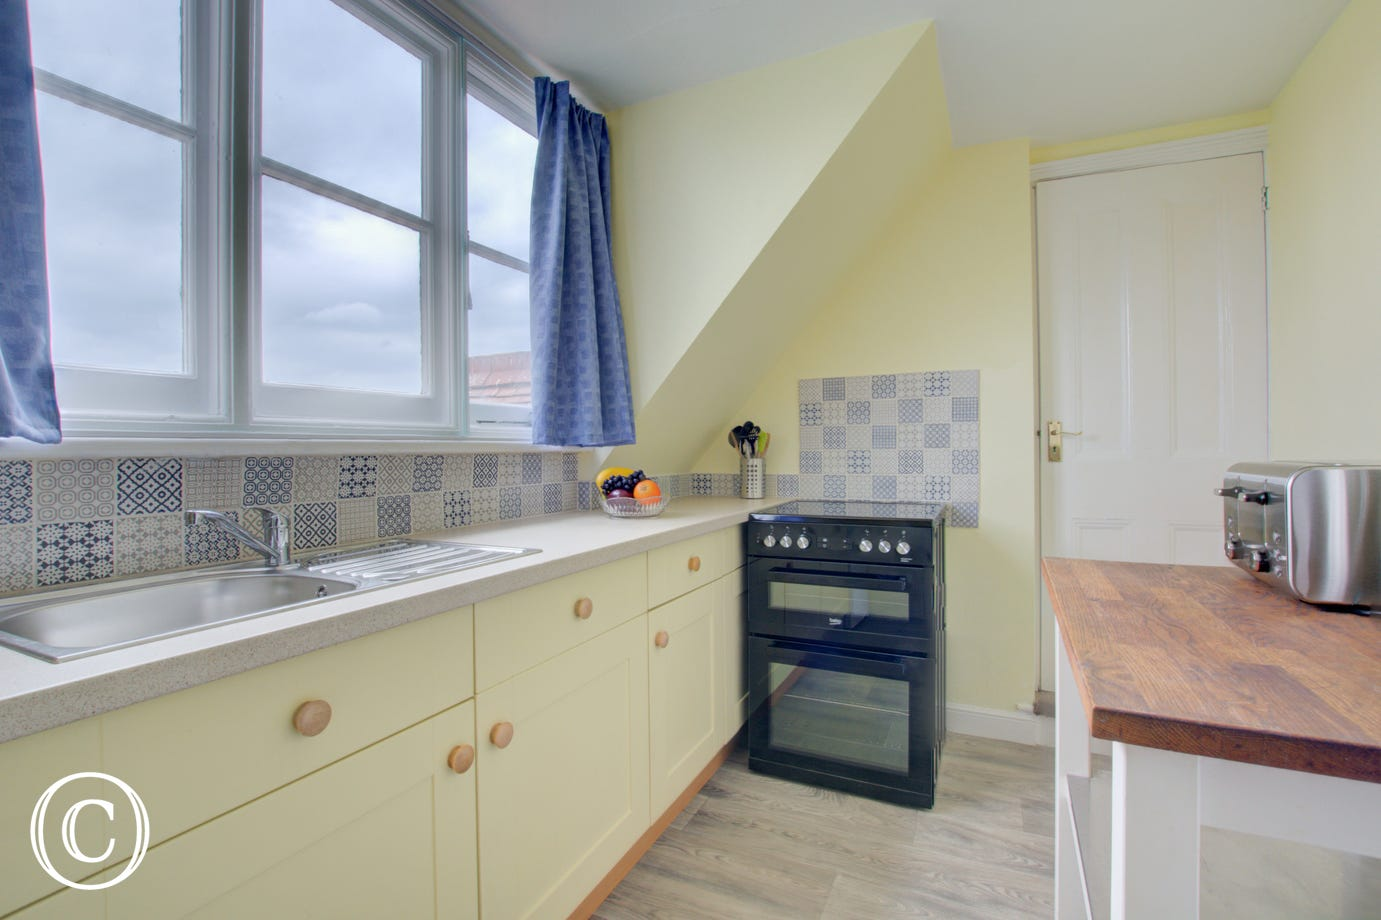 Kitchen with fitted units & freestanding oven